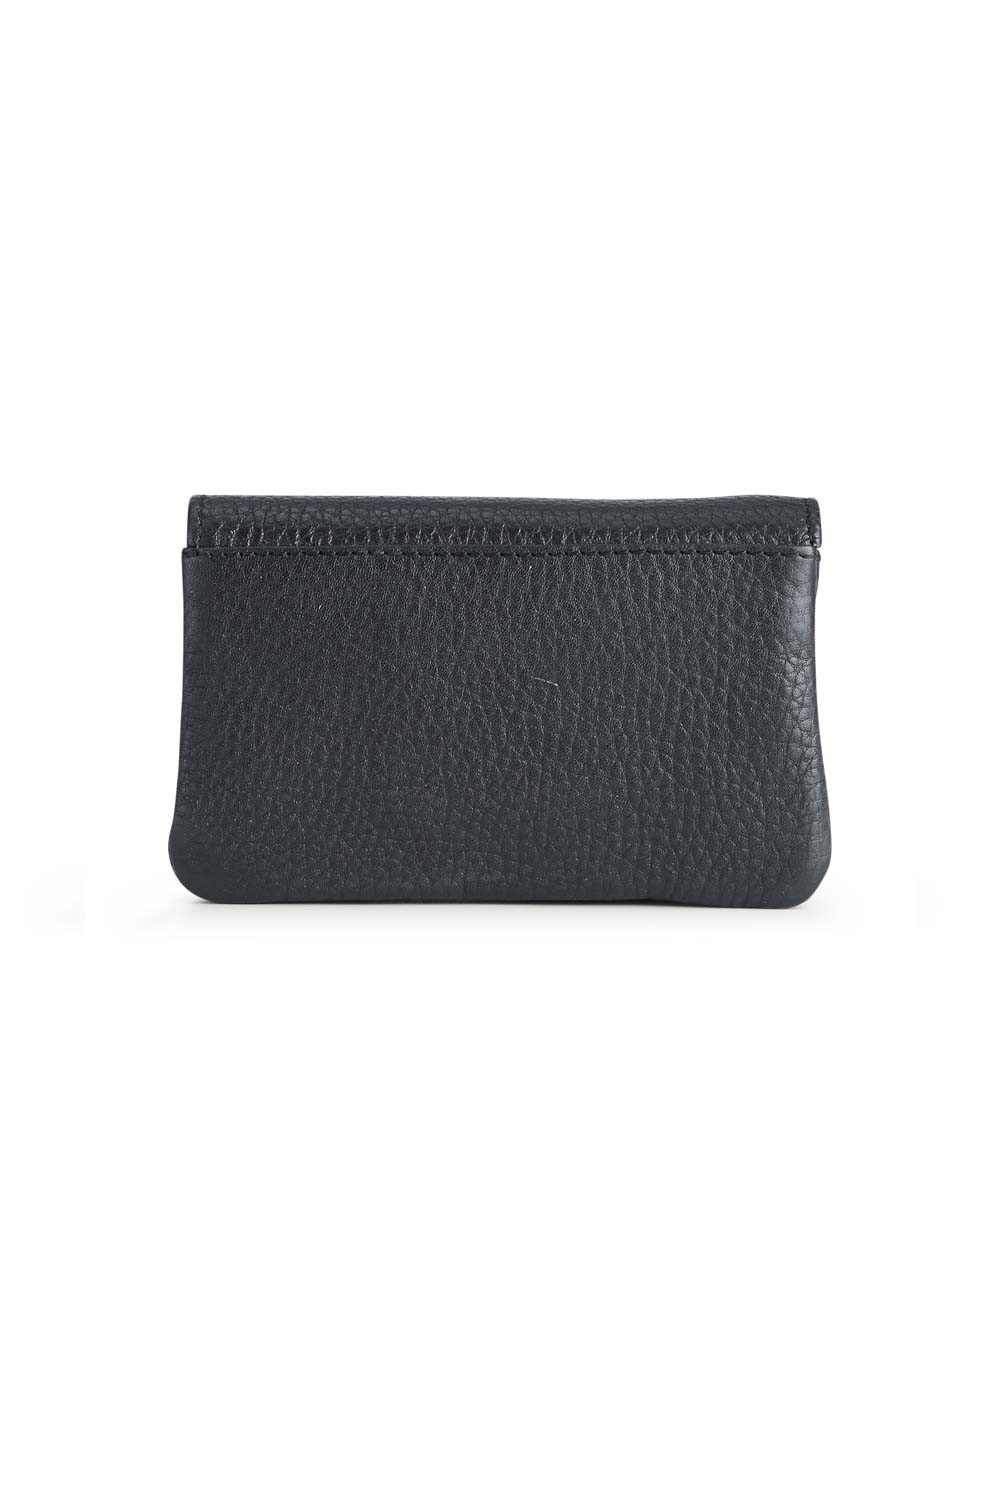 Faith Coin Purse Grain - Black-4